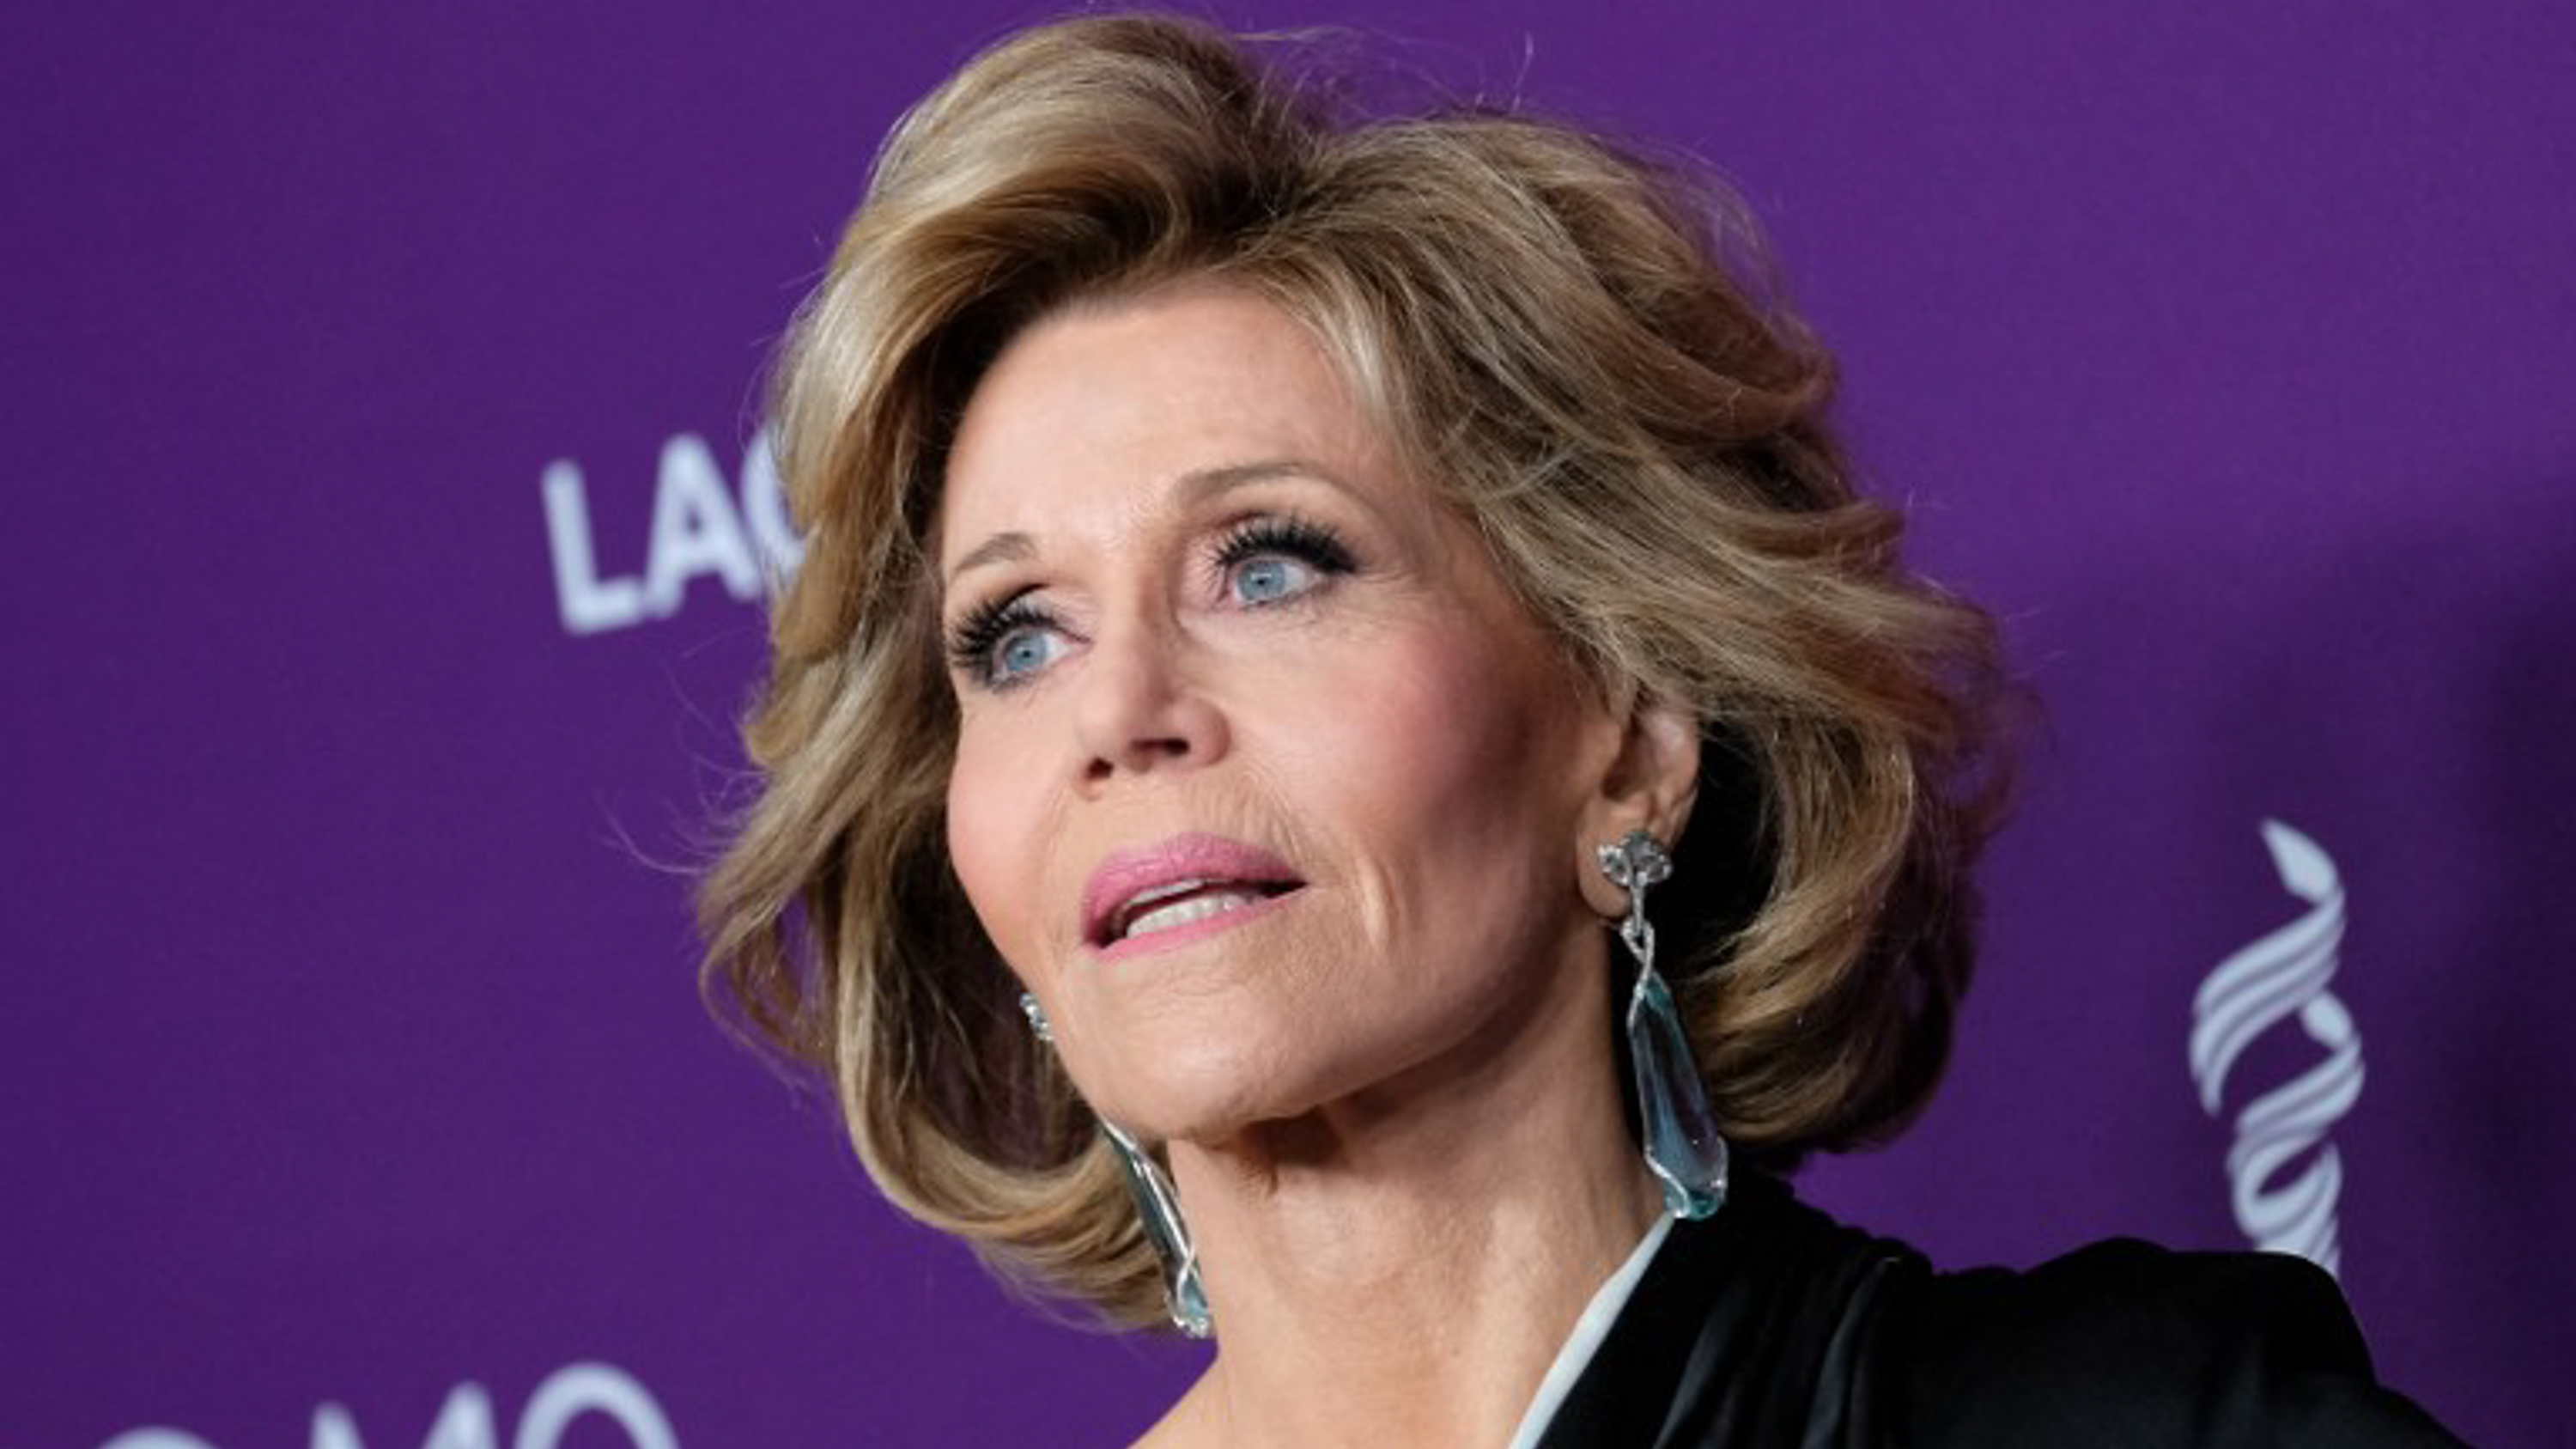 Jane Fonda Reveals That She Was Raped and Sexually Abused as a Child